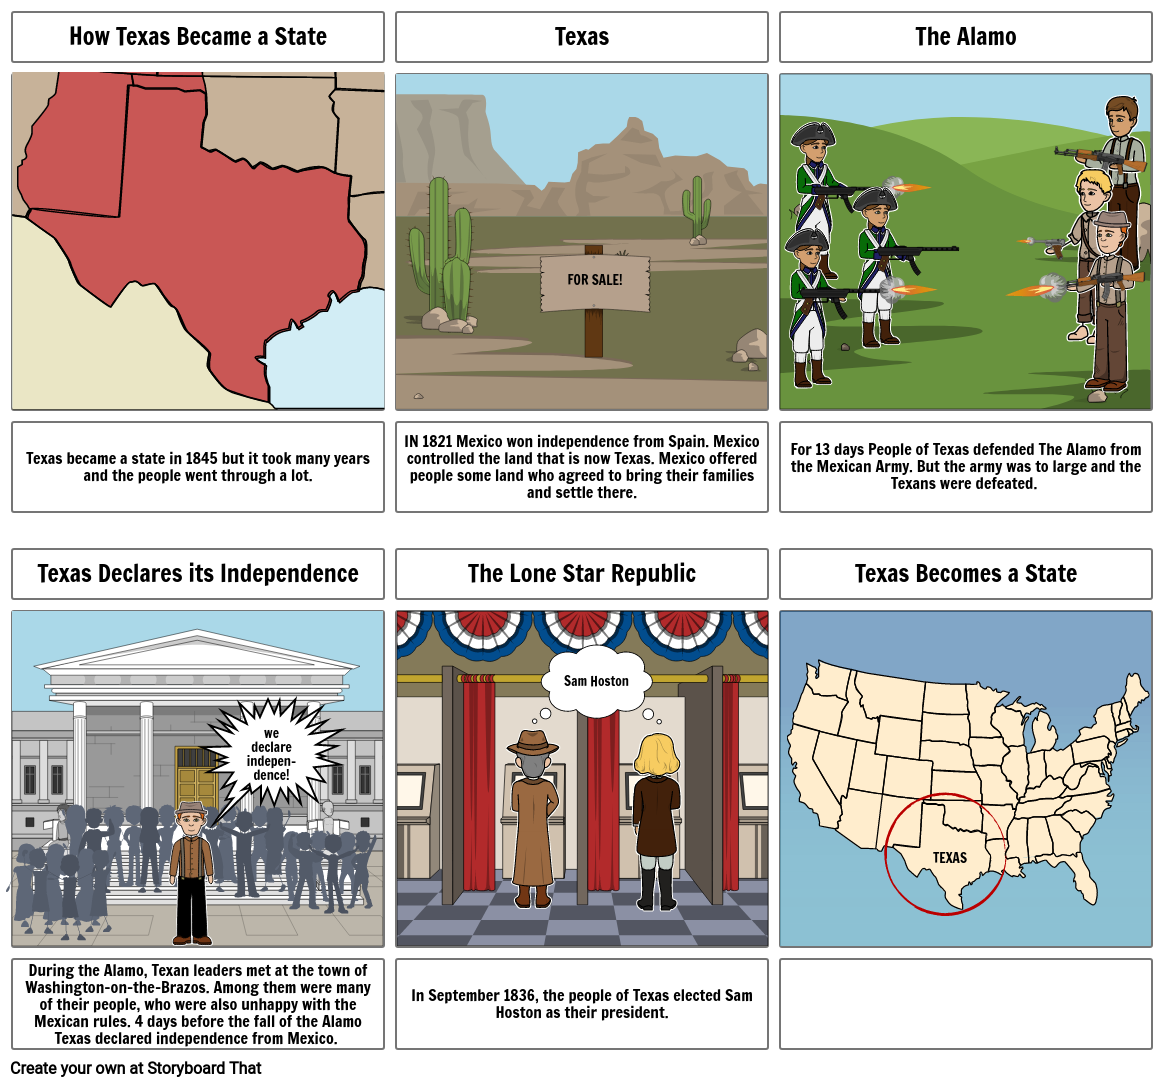 How Texas became a state